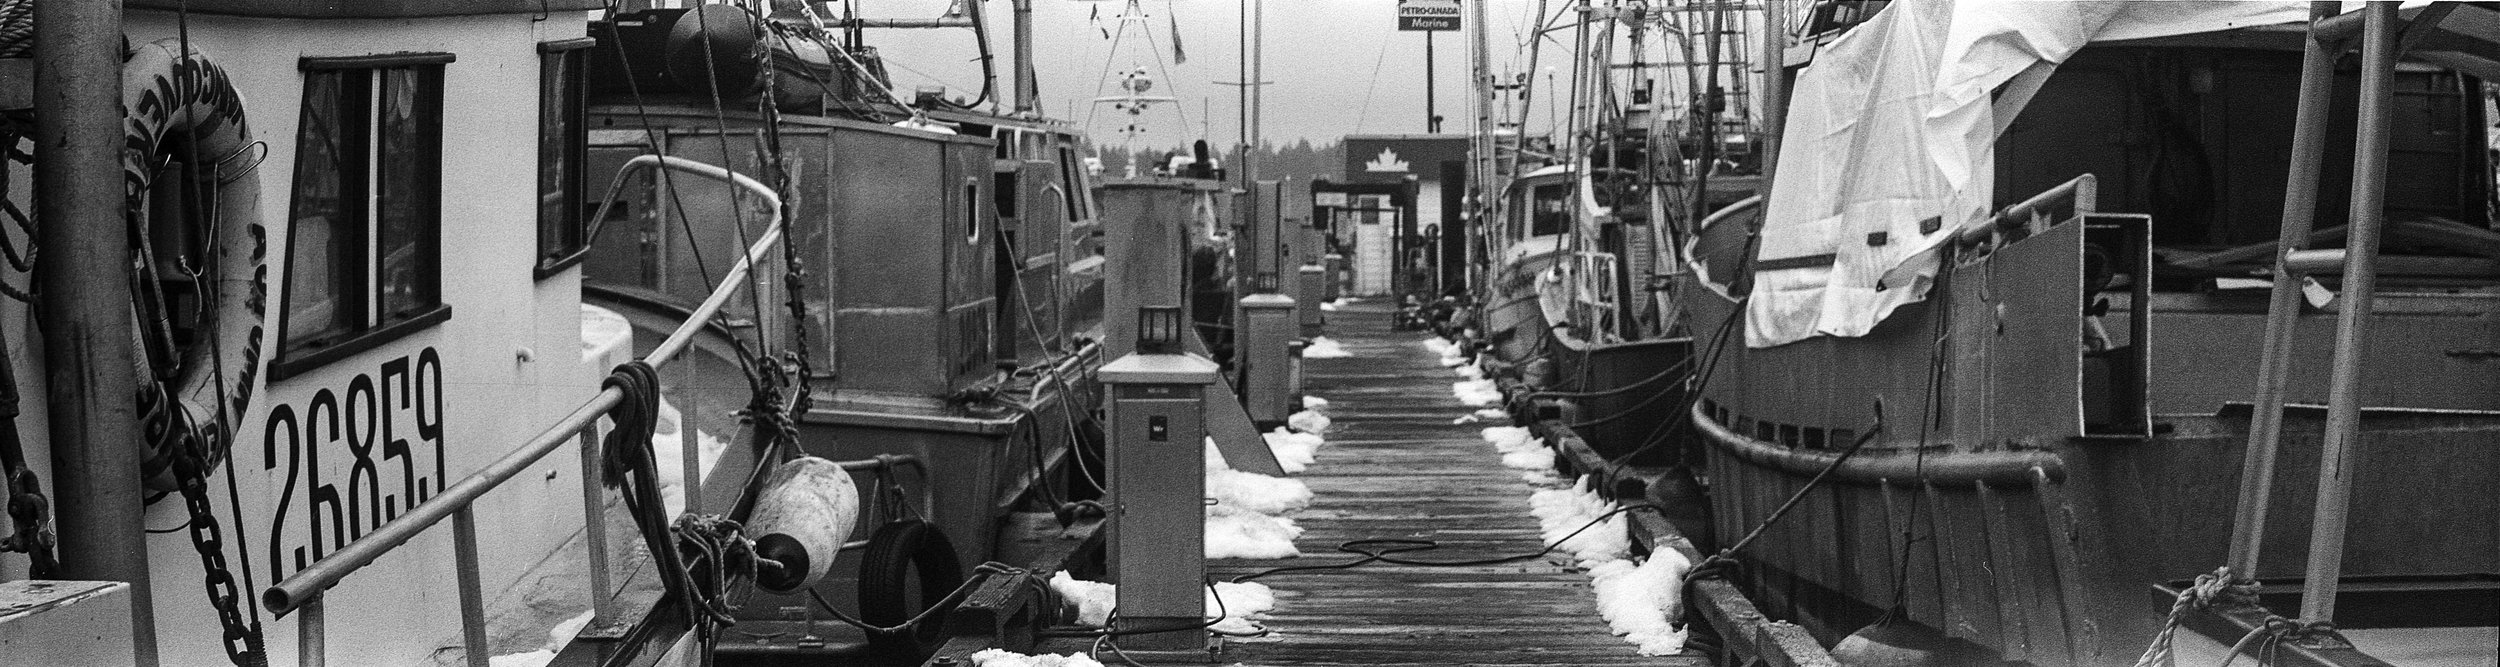 Rare snowfall lining the docks edge.